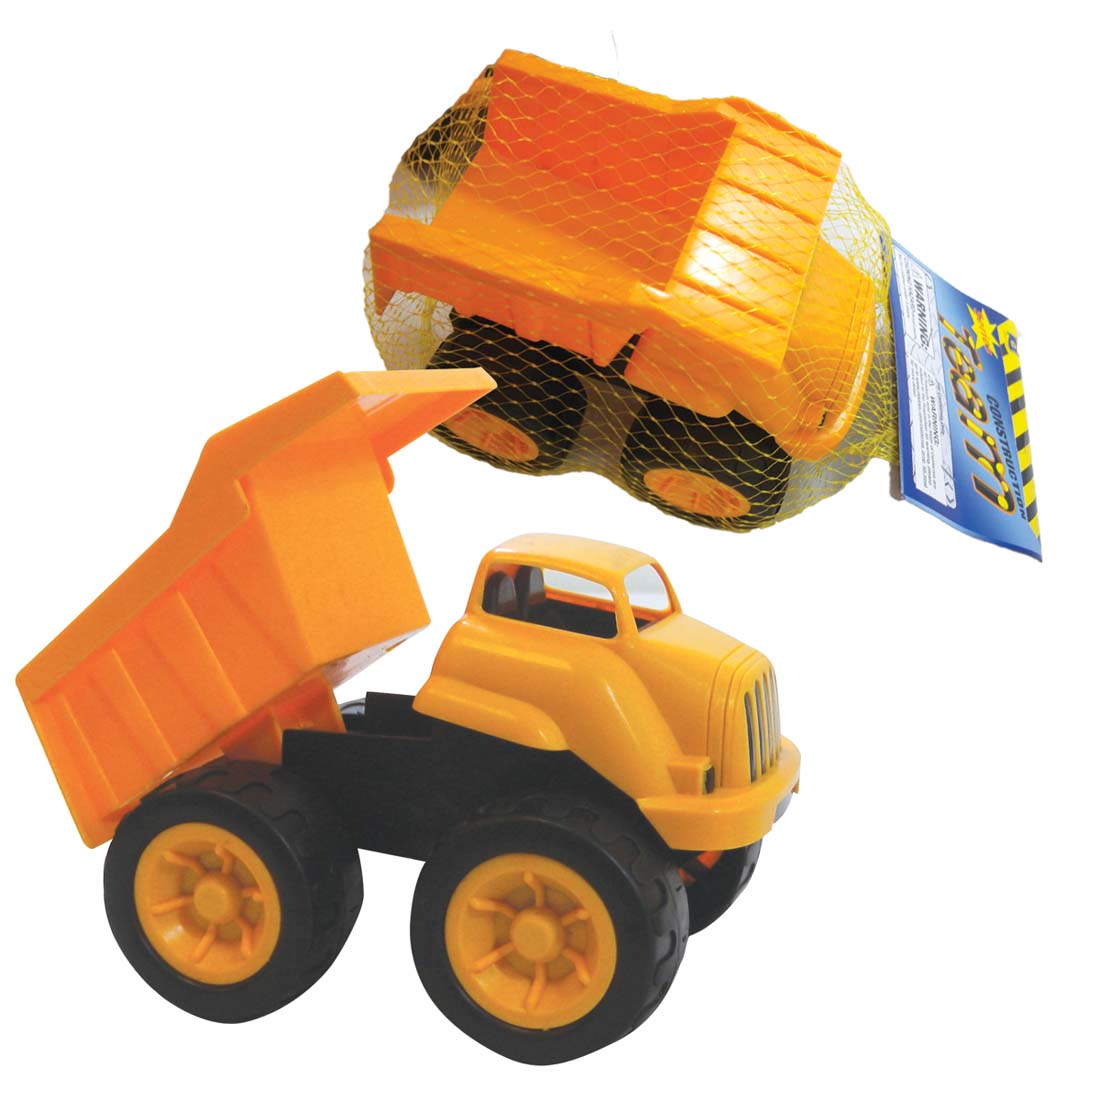 View DUMP TRUCK 5.5 INCHES